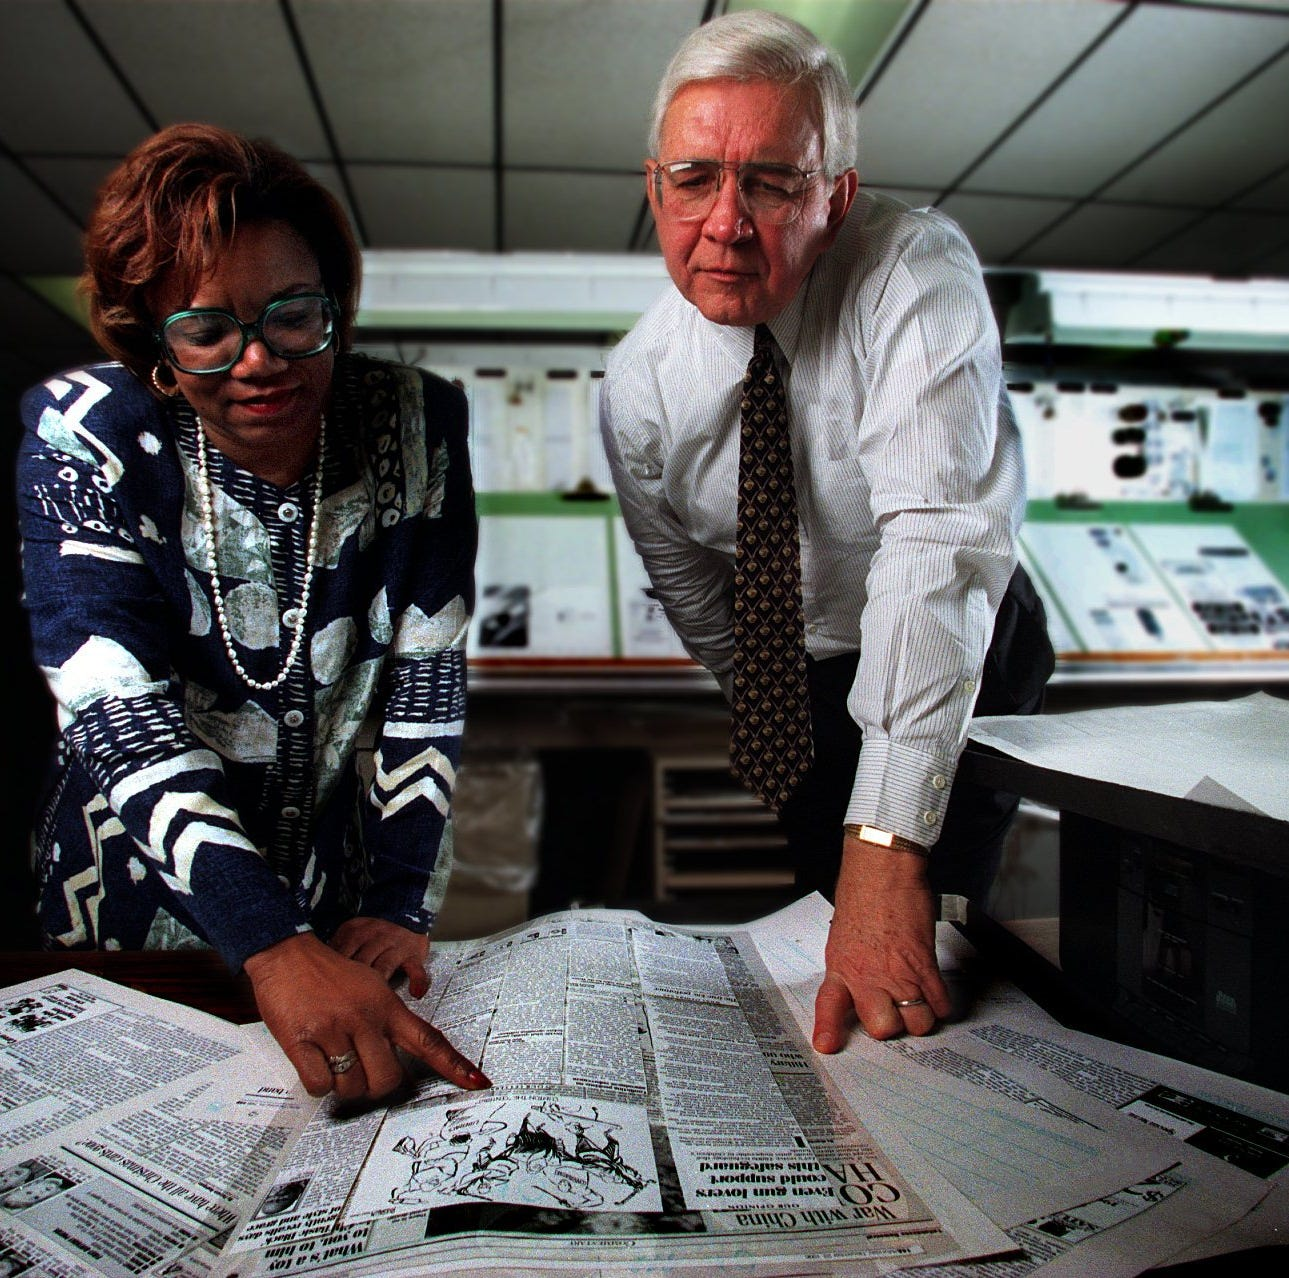 Lorraine Branham, first female and African American editor at Tallahassee Democrat, dies at 66